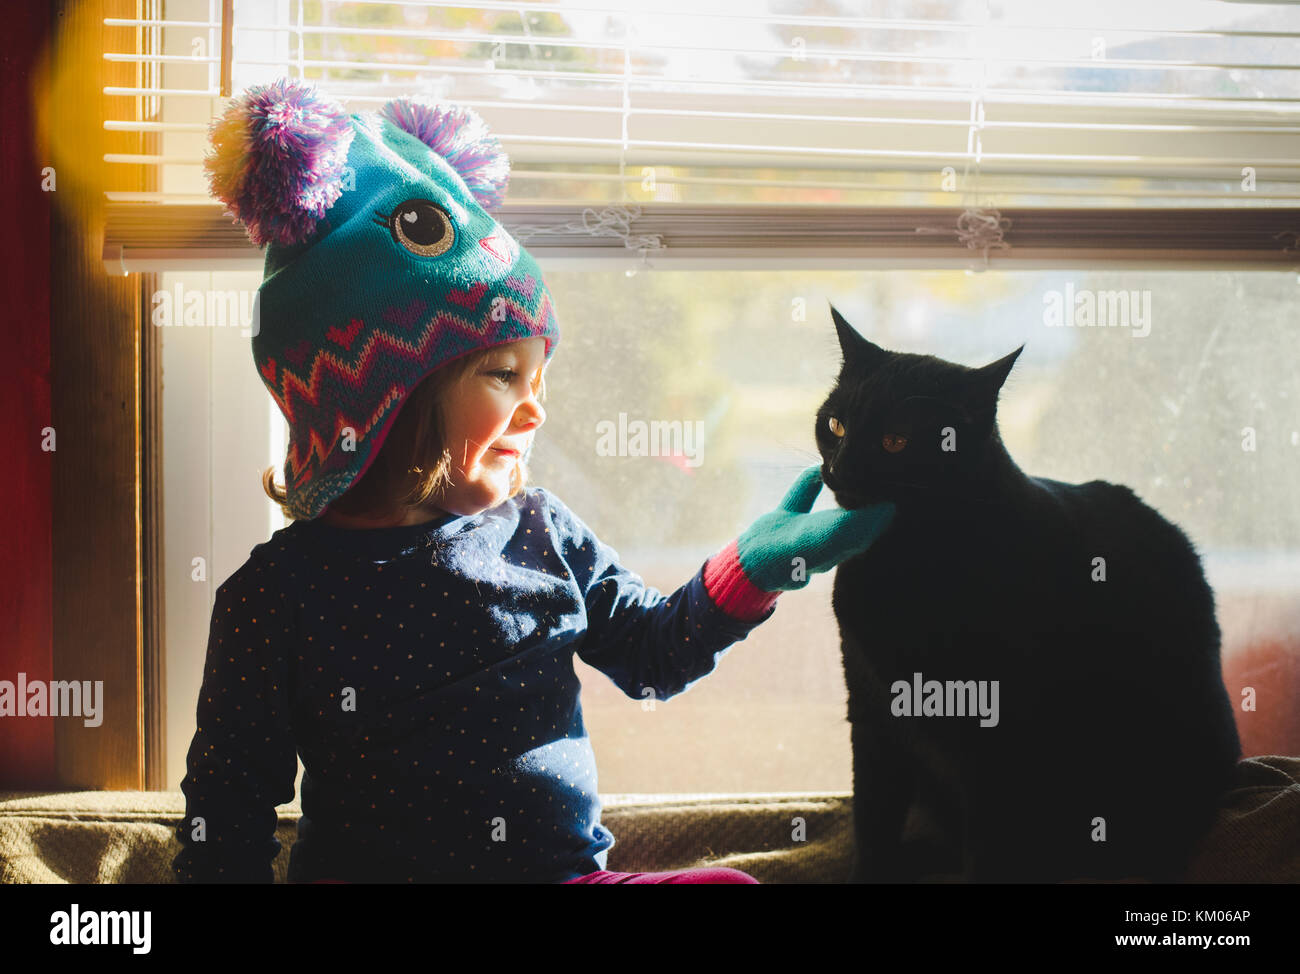 A little girl wearing a winter hat pets a cat while sitting in a sunny window. Stock Photo